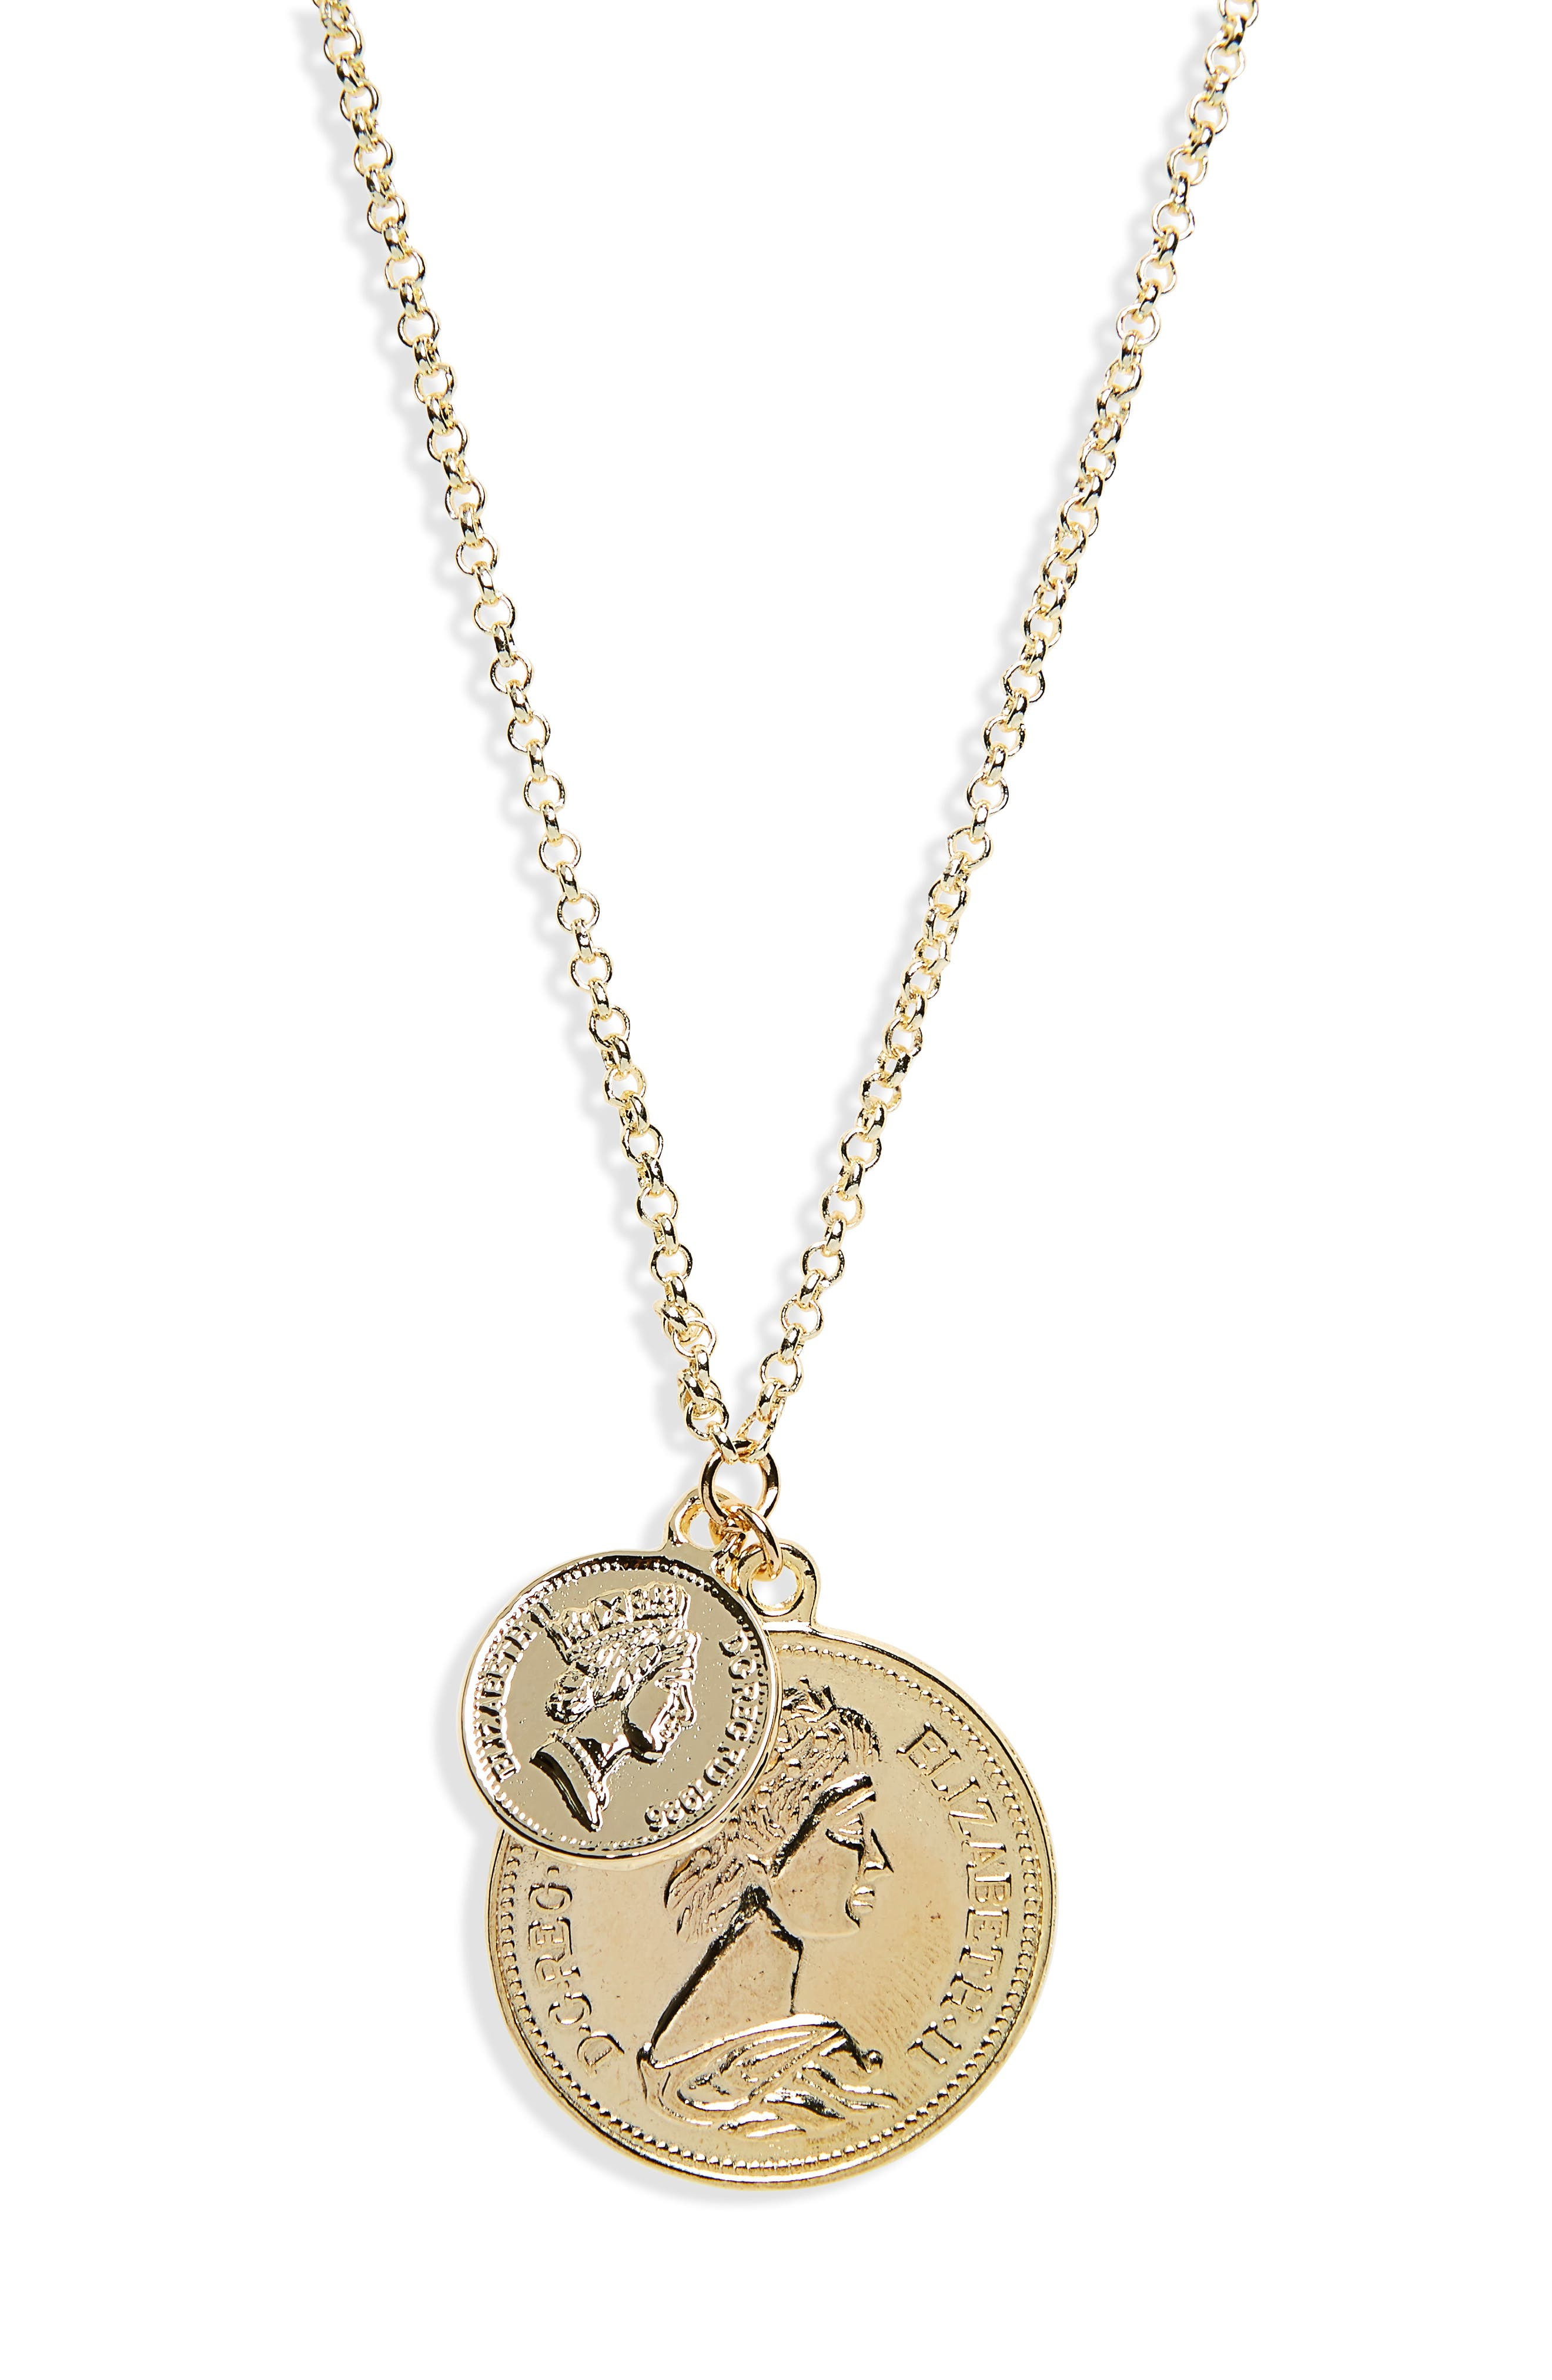 Double Coin Pendant Necklace,                             Main thumbnail 1, color,                             YELLOW GOLD